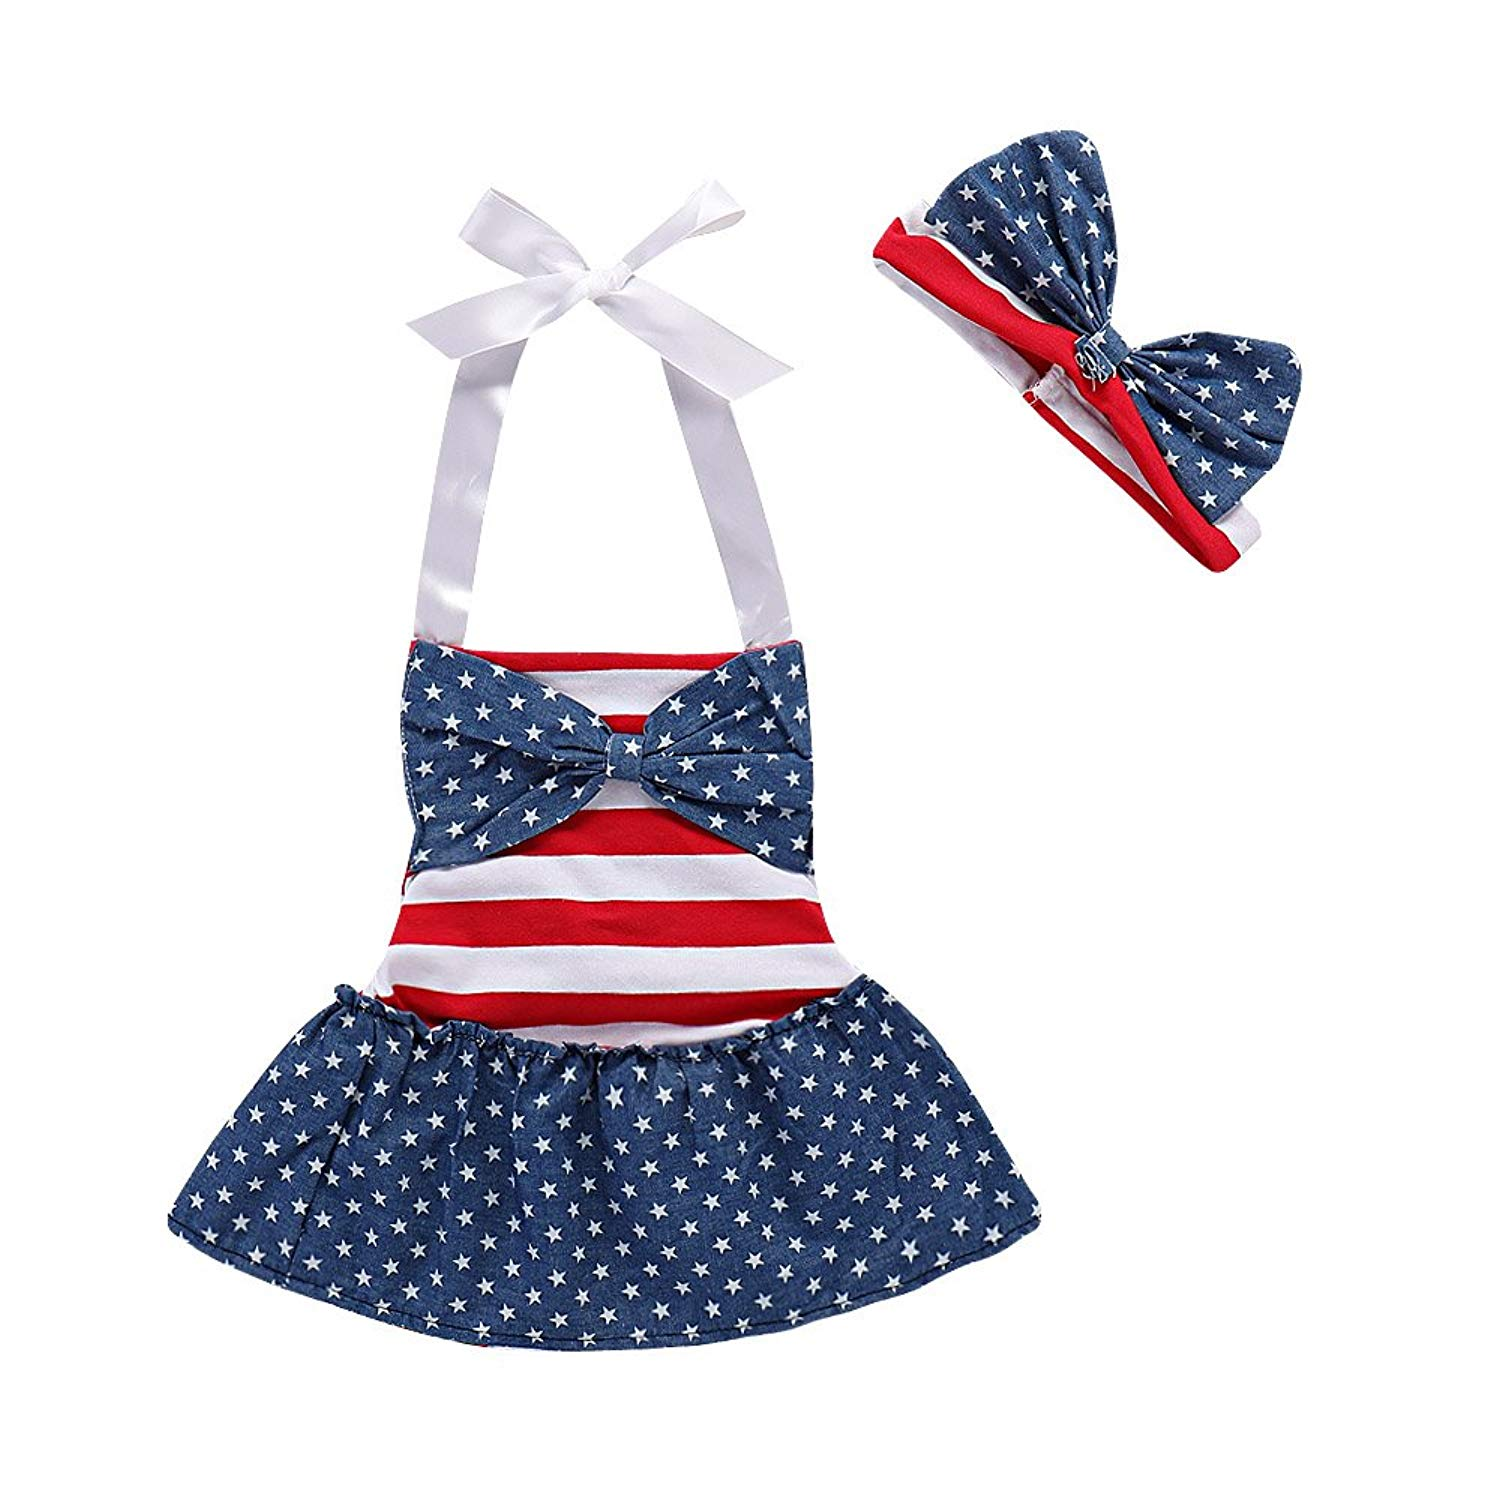 58289f0b4a37 Get Quotations · Seaby July 4th American Flag Romper Dress Striped Stars  Print Patriotic Bodysuit Outfit for Baby Girls